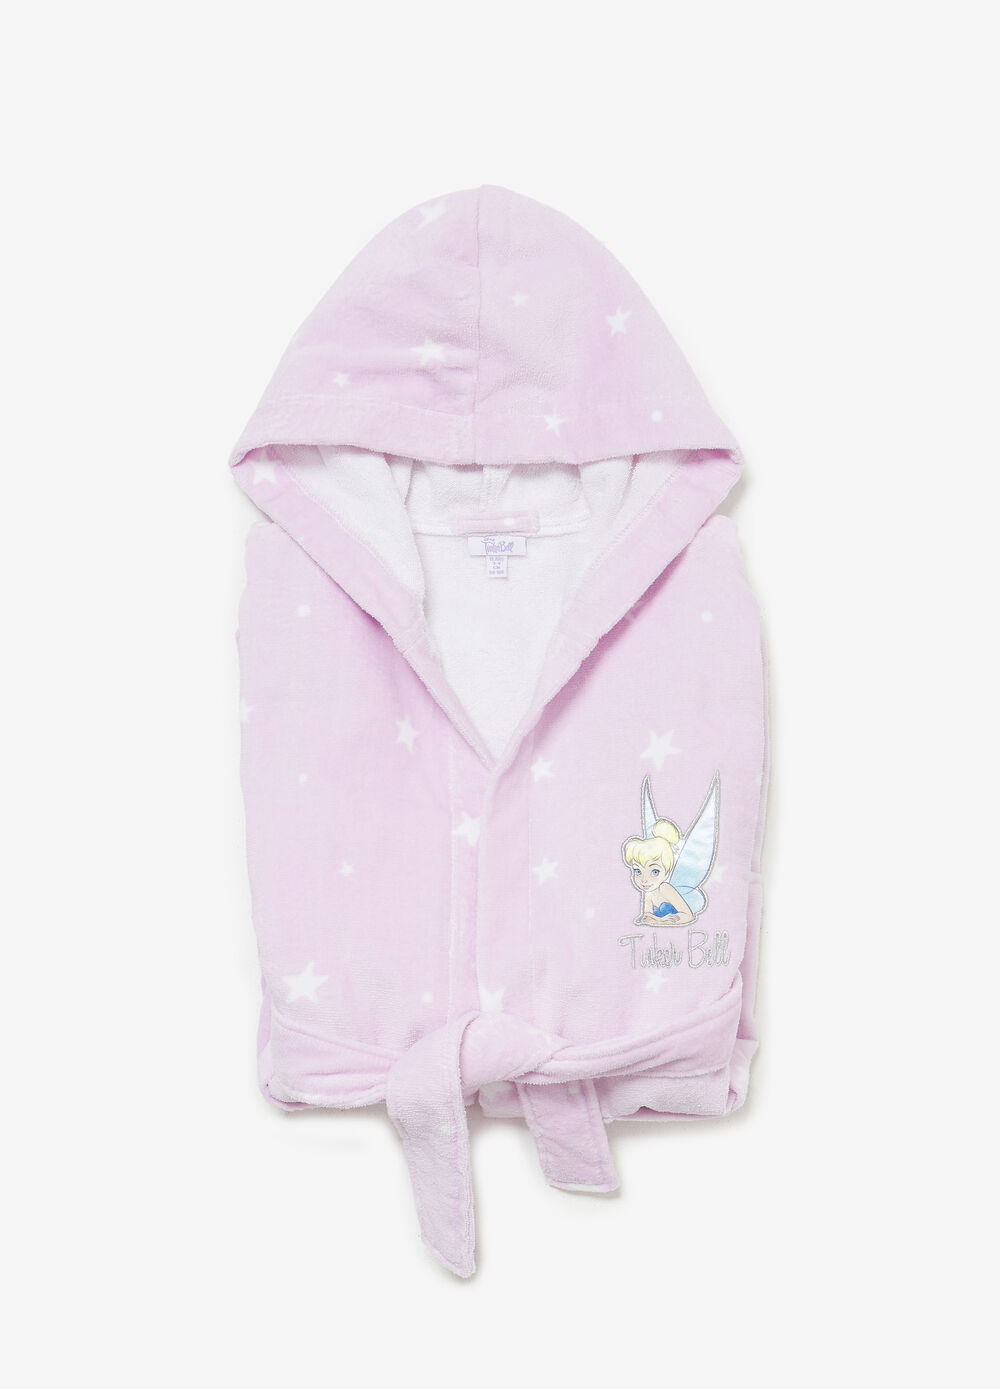 BCI bathrobe with Tinkerbell patch